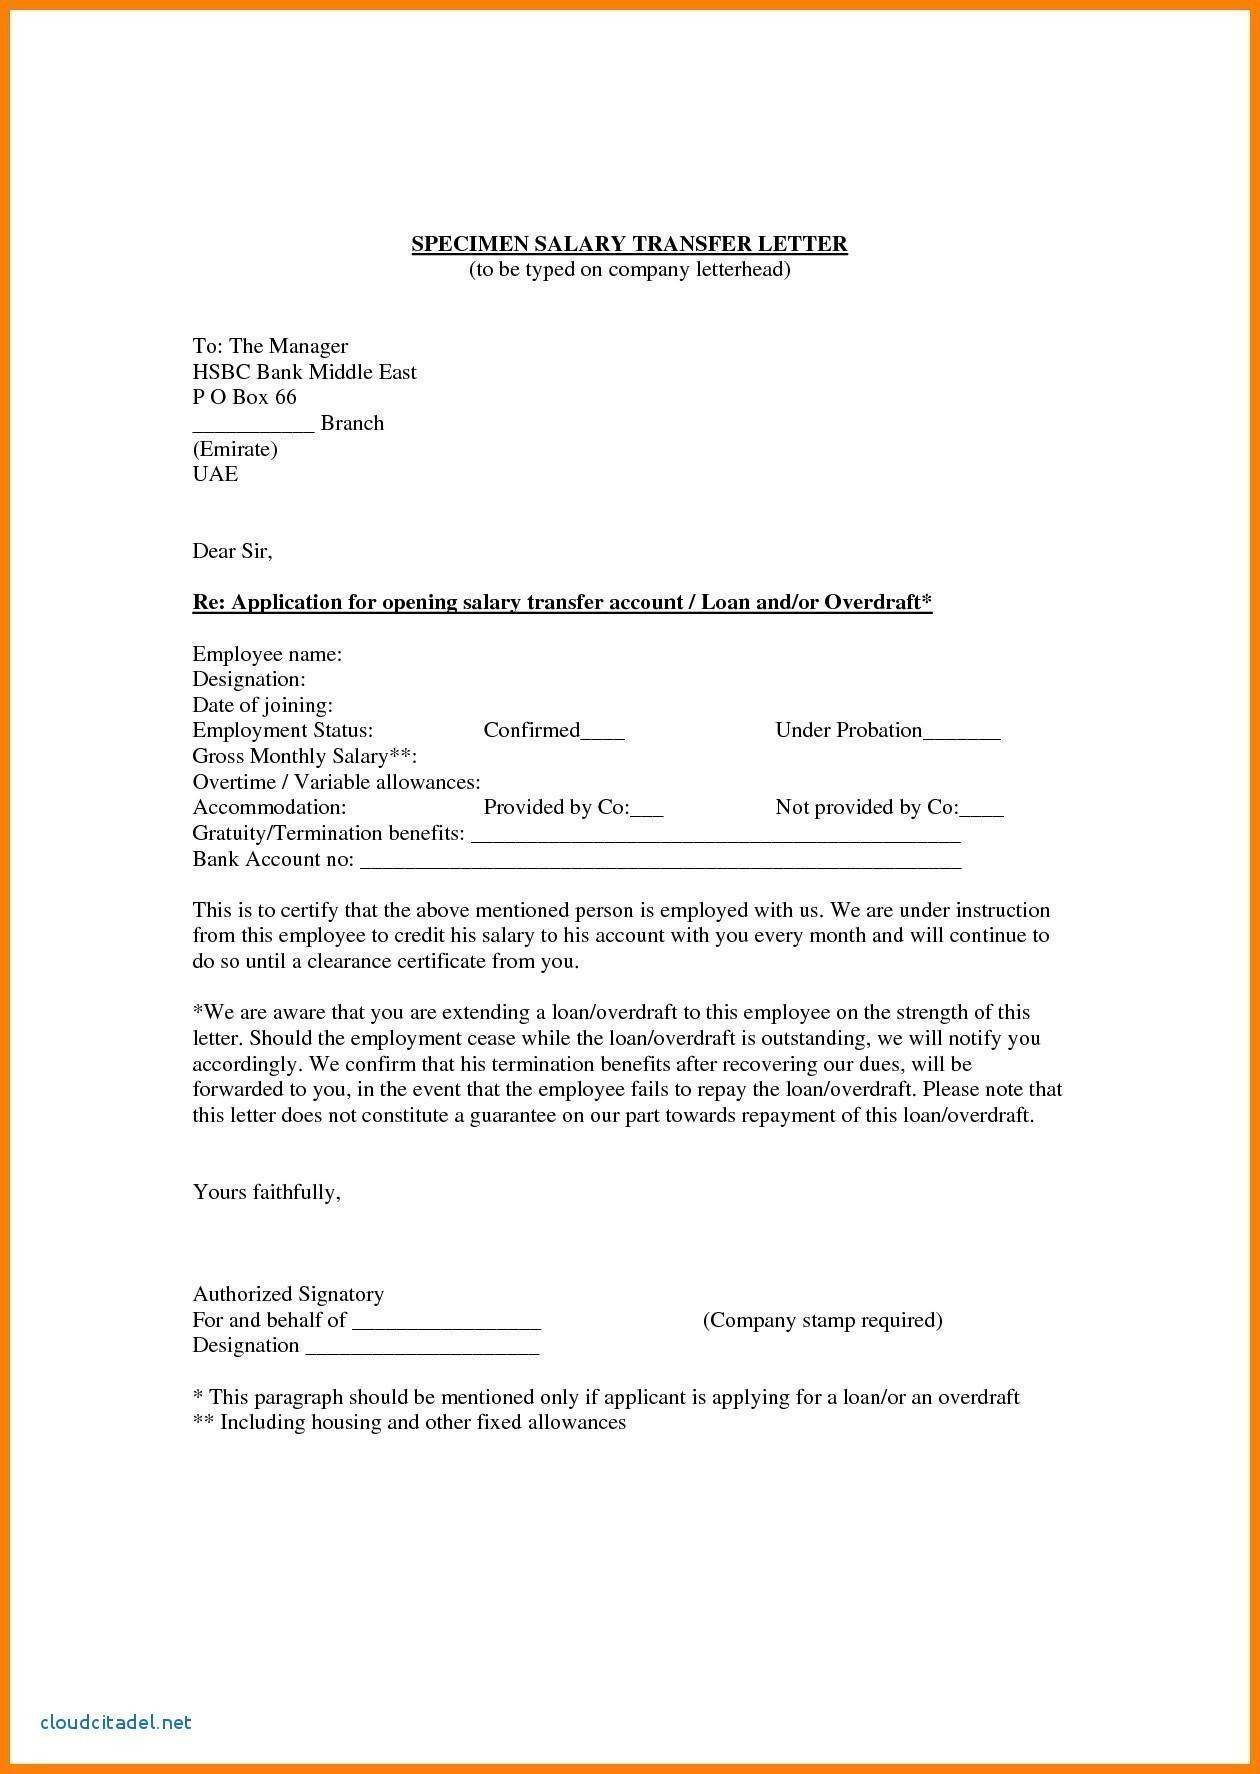 Personal Loan Application Letter Sample To Bank